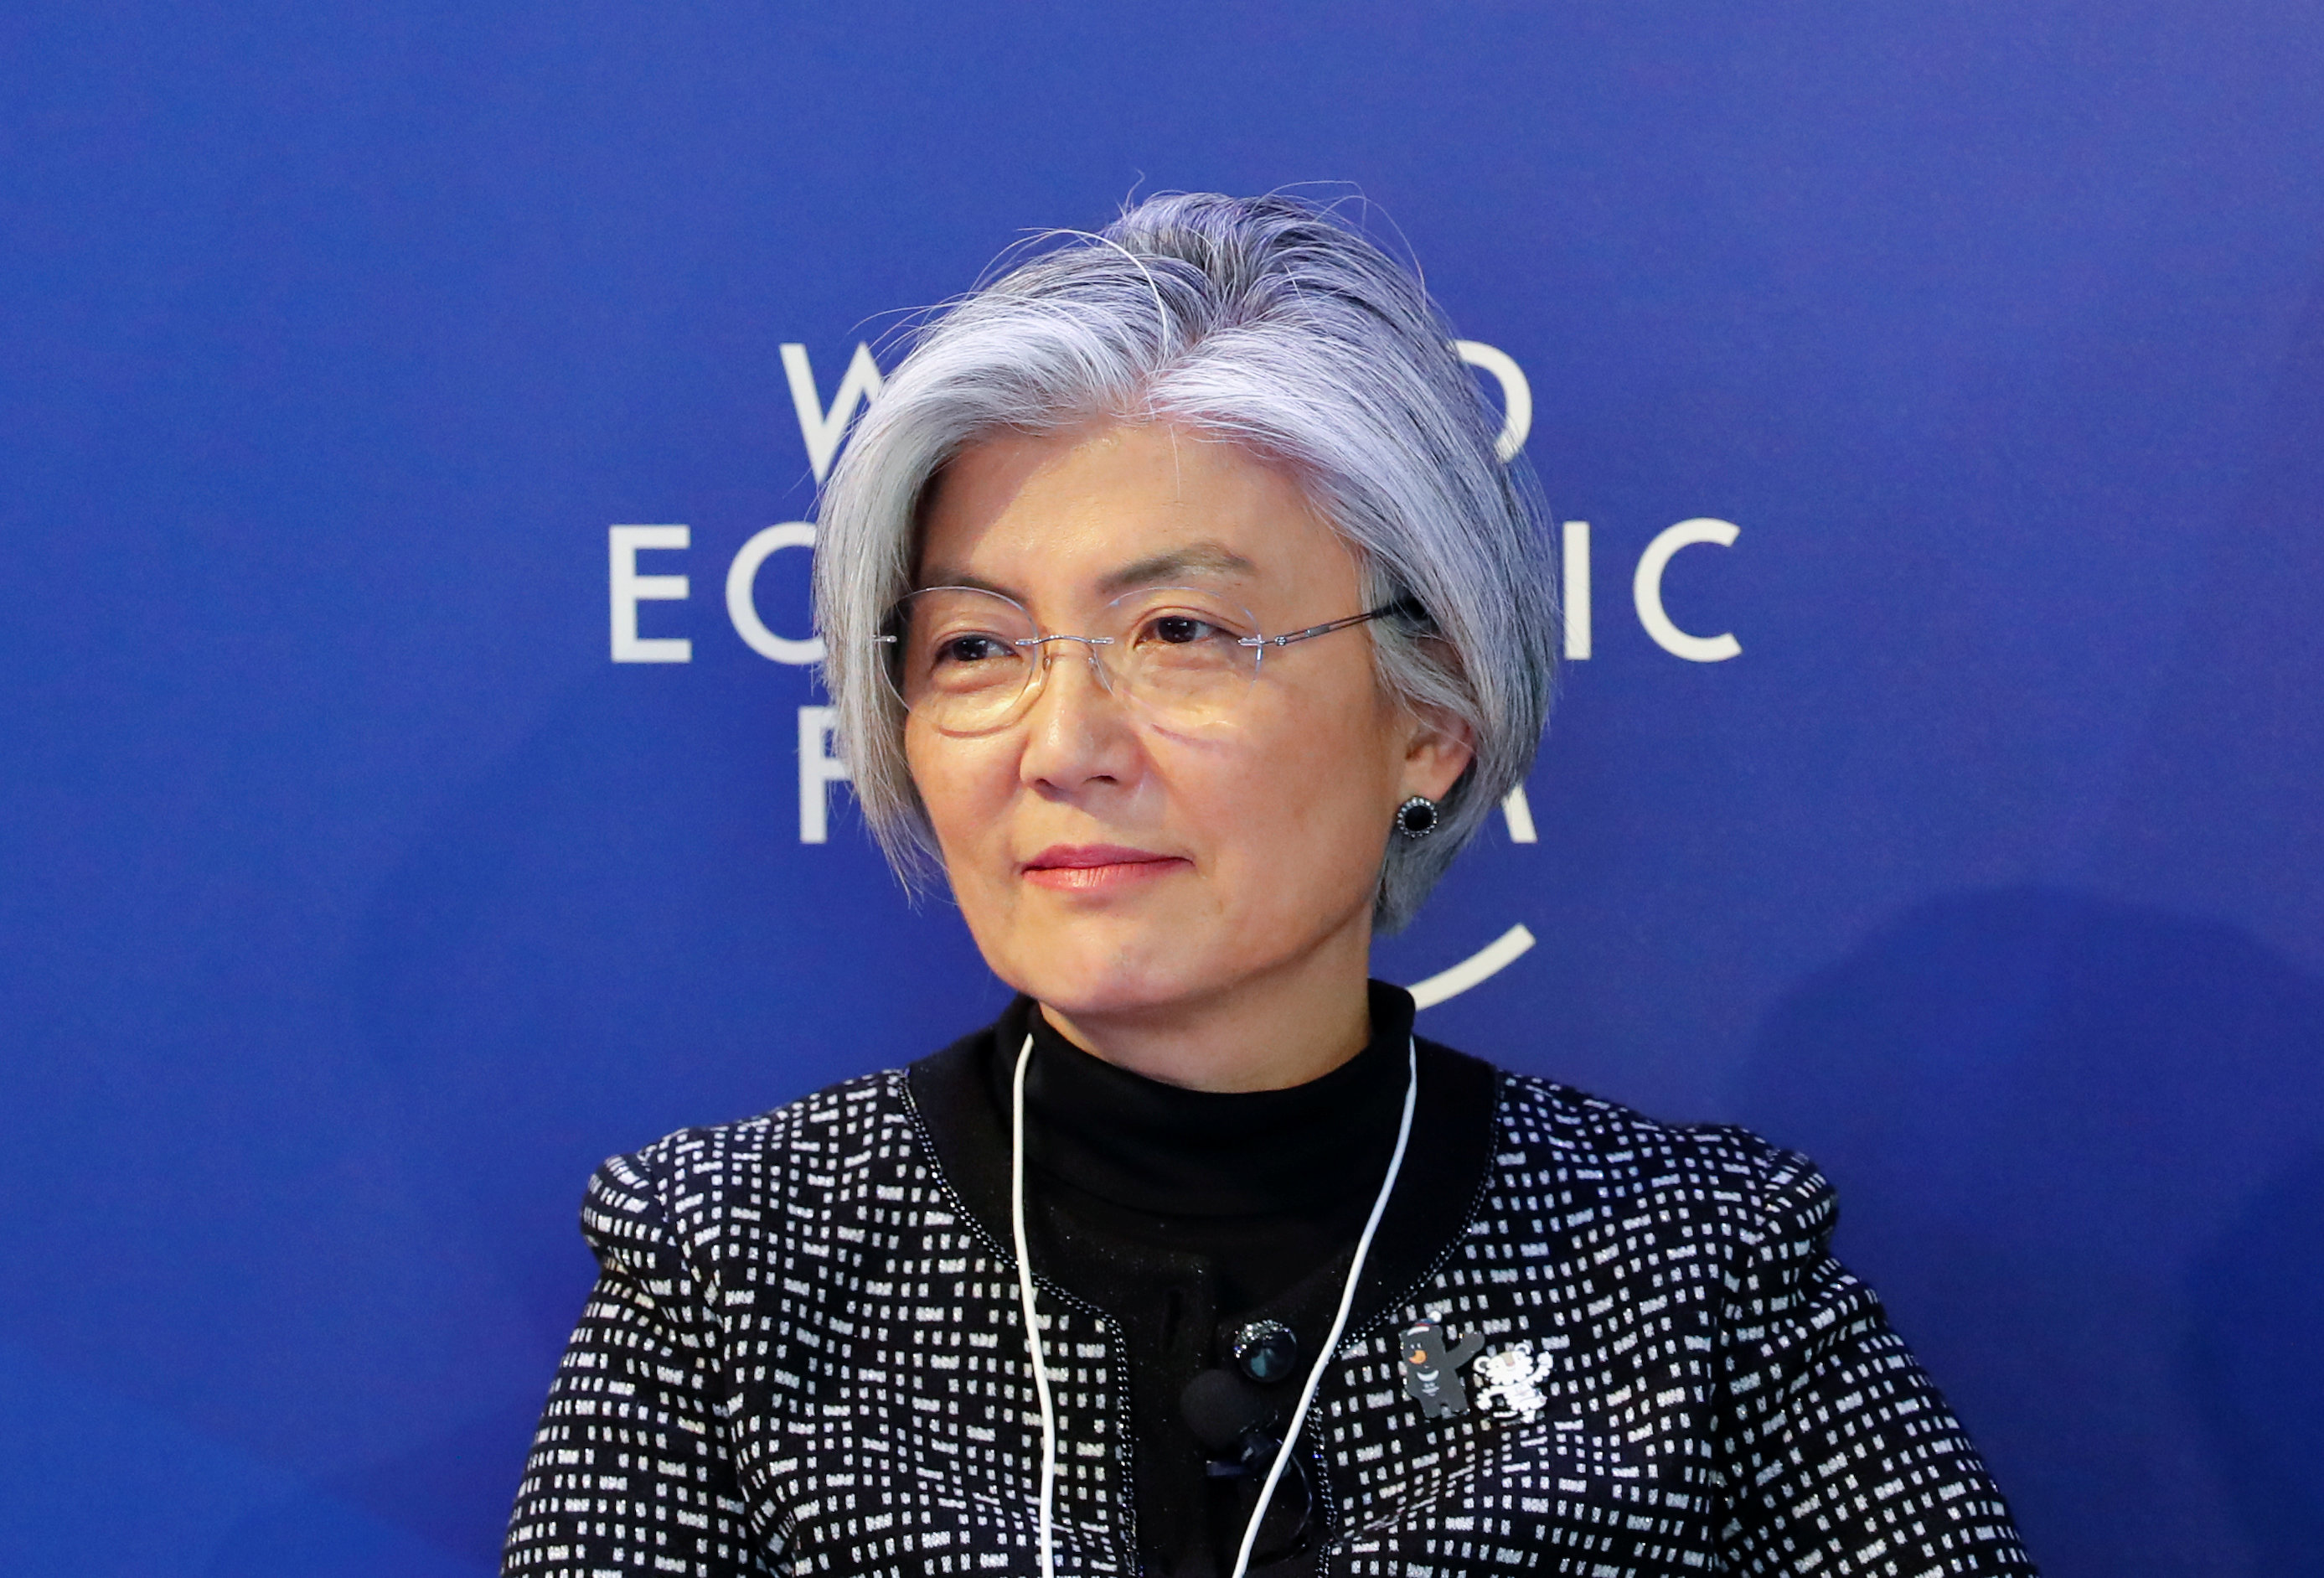 Kang Kyung-Wha, South Korea's Foreign Minister, attends the World Economic Forum (WEF) annual meeting in Davos, Switzerland January 25, 2018.